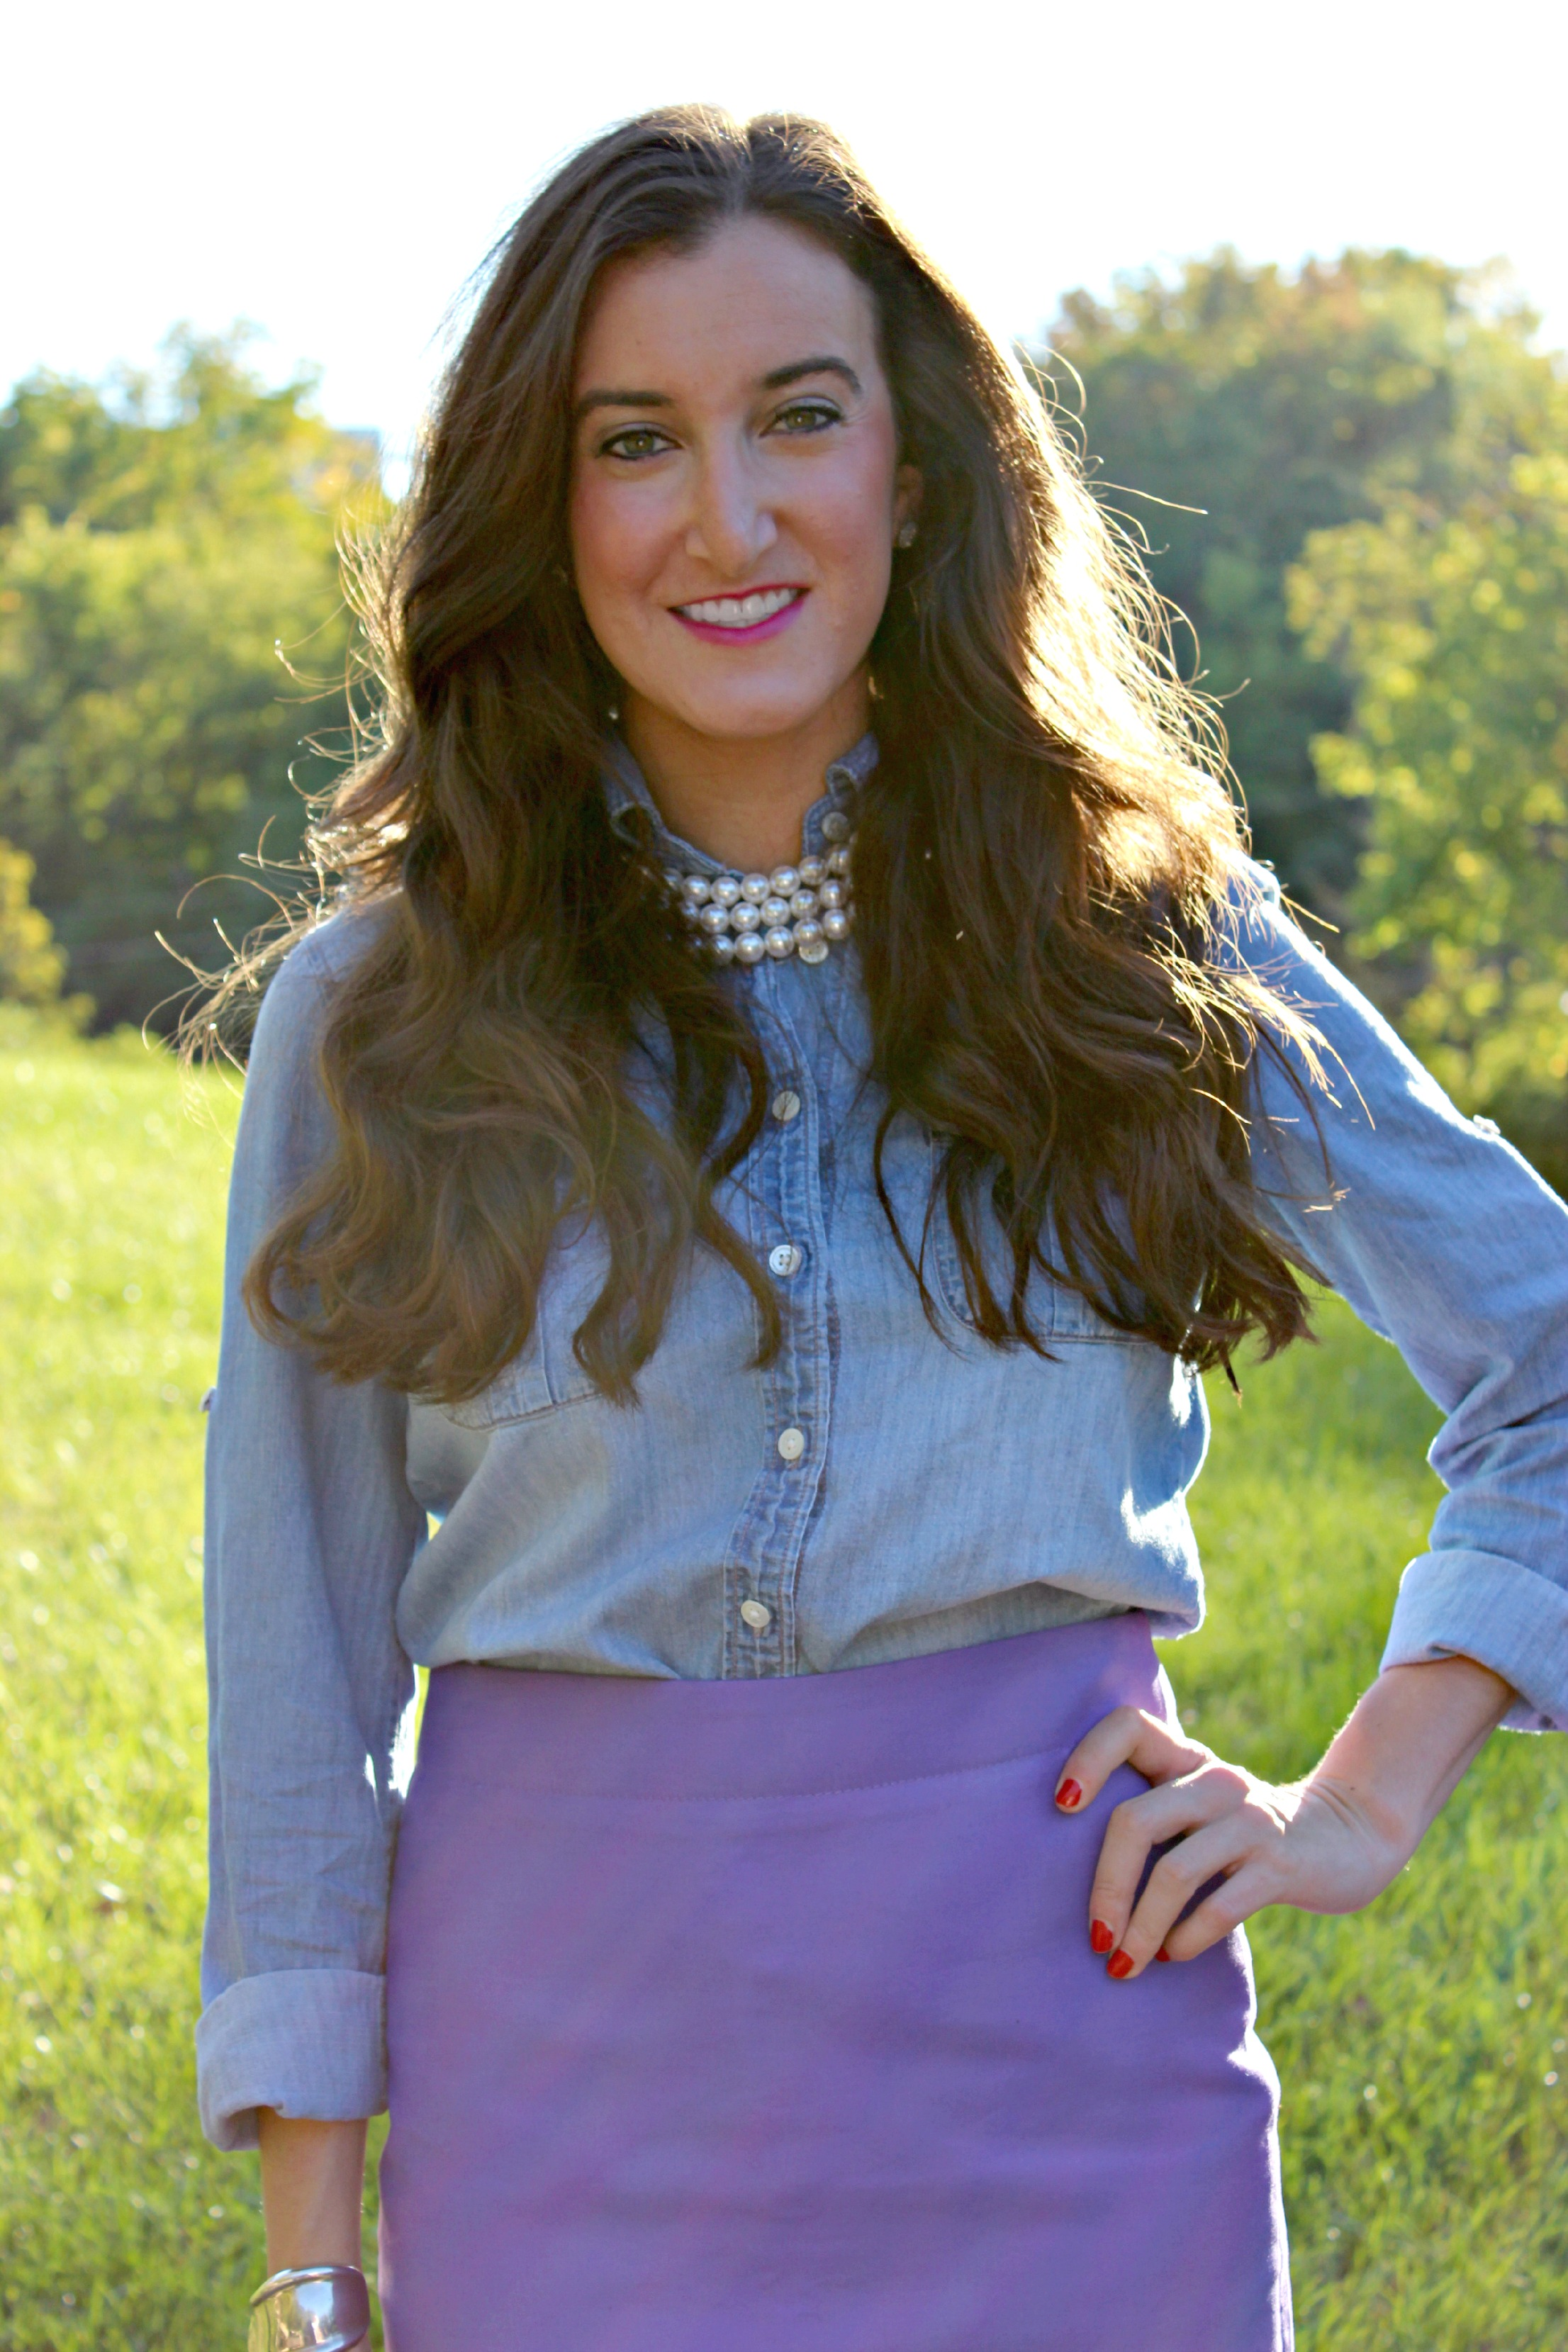 J.Crew Pencil Skirt, J.Crew Chambray